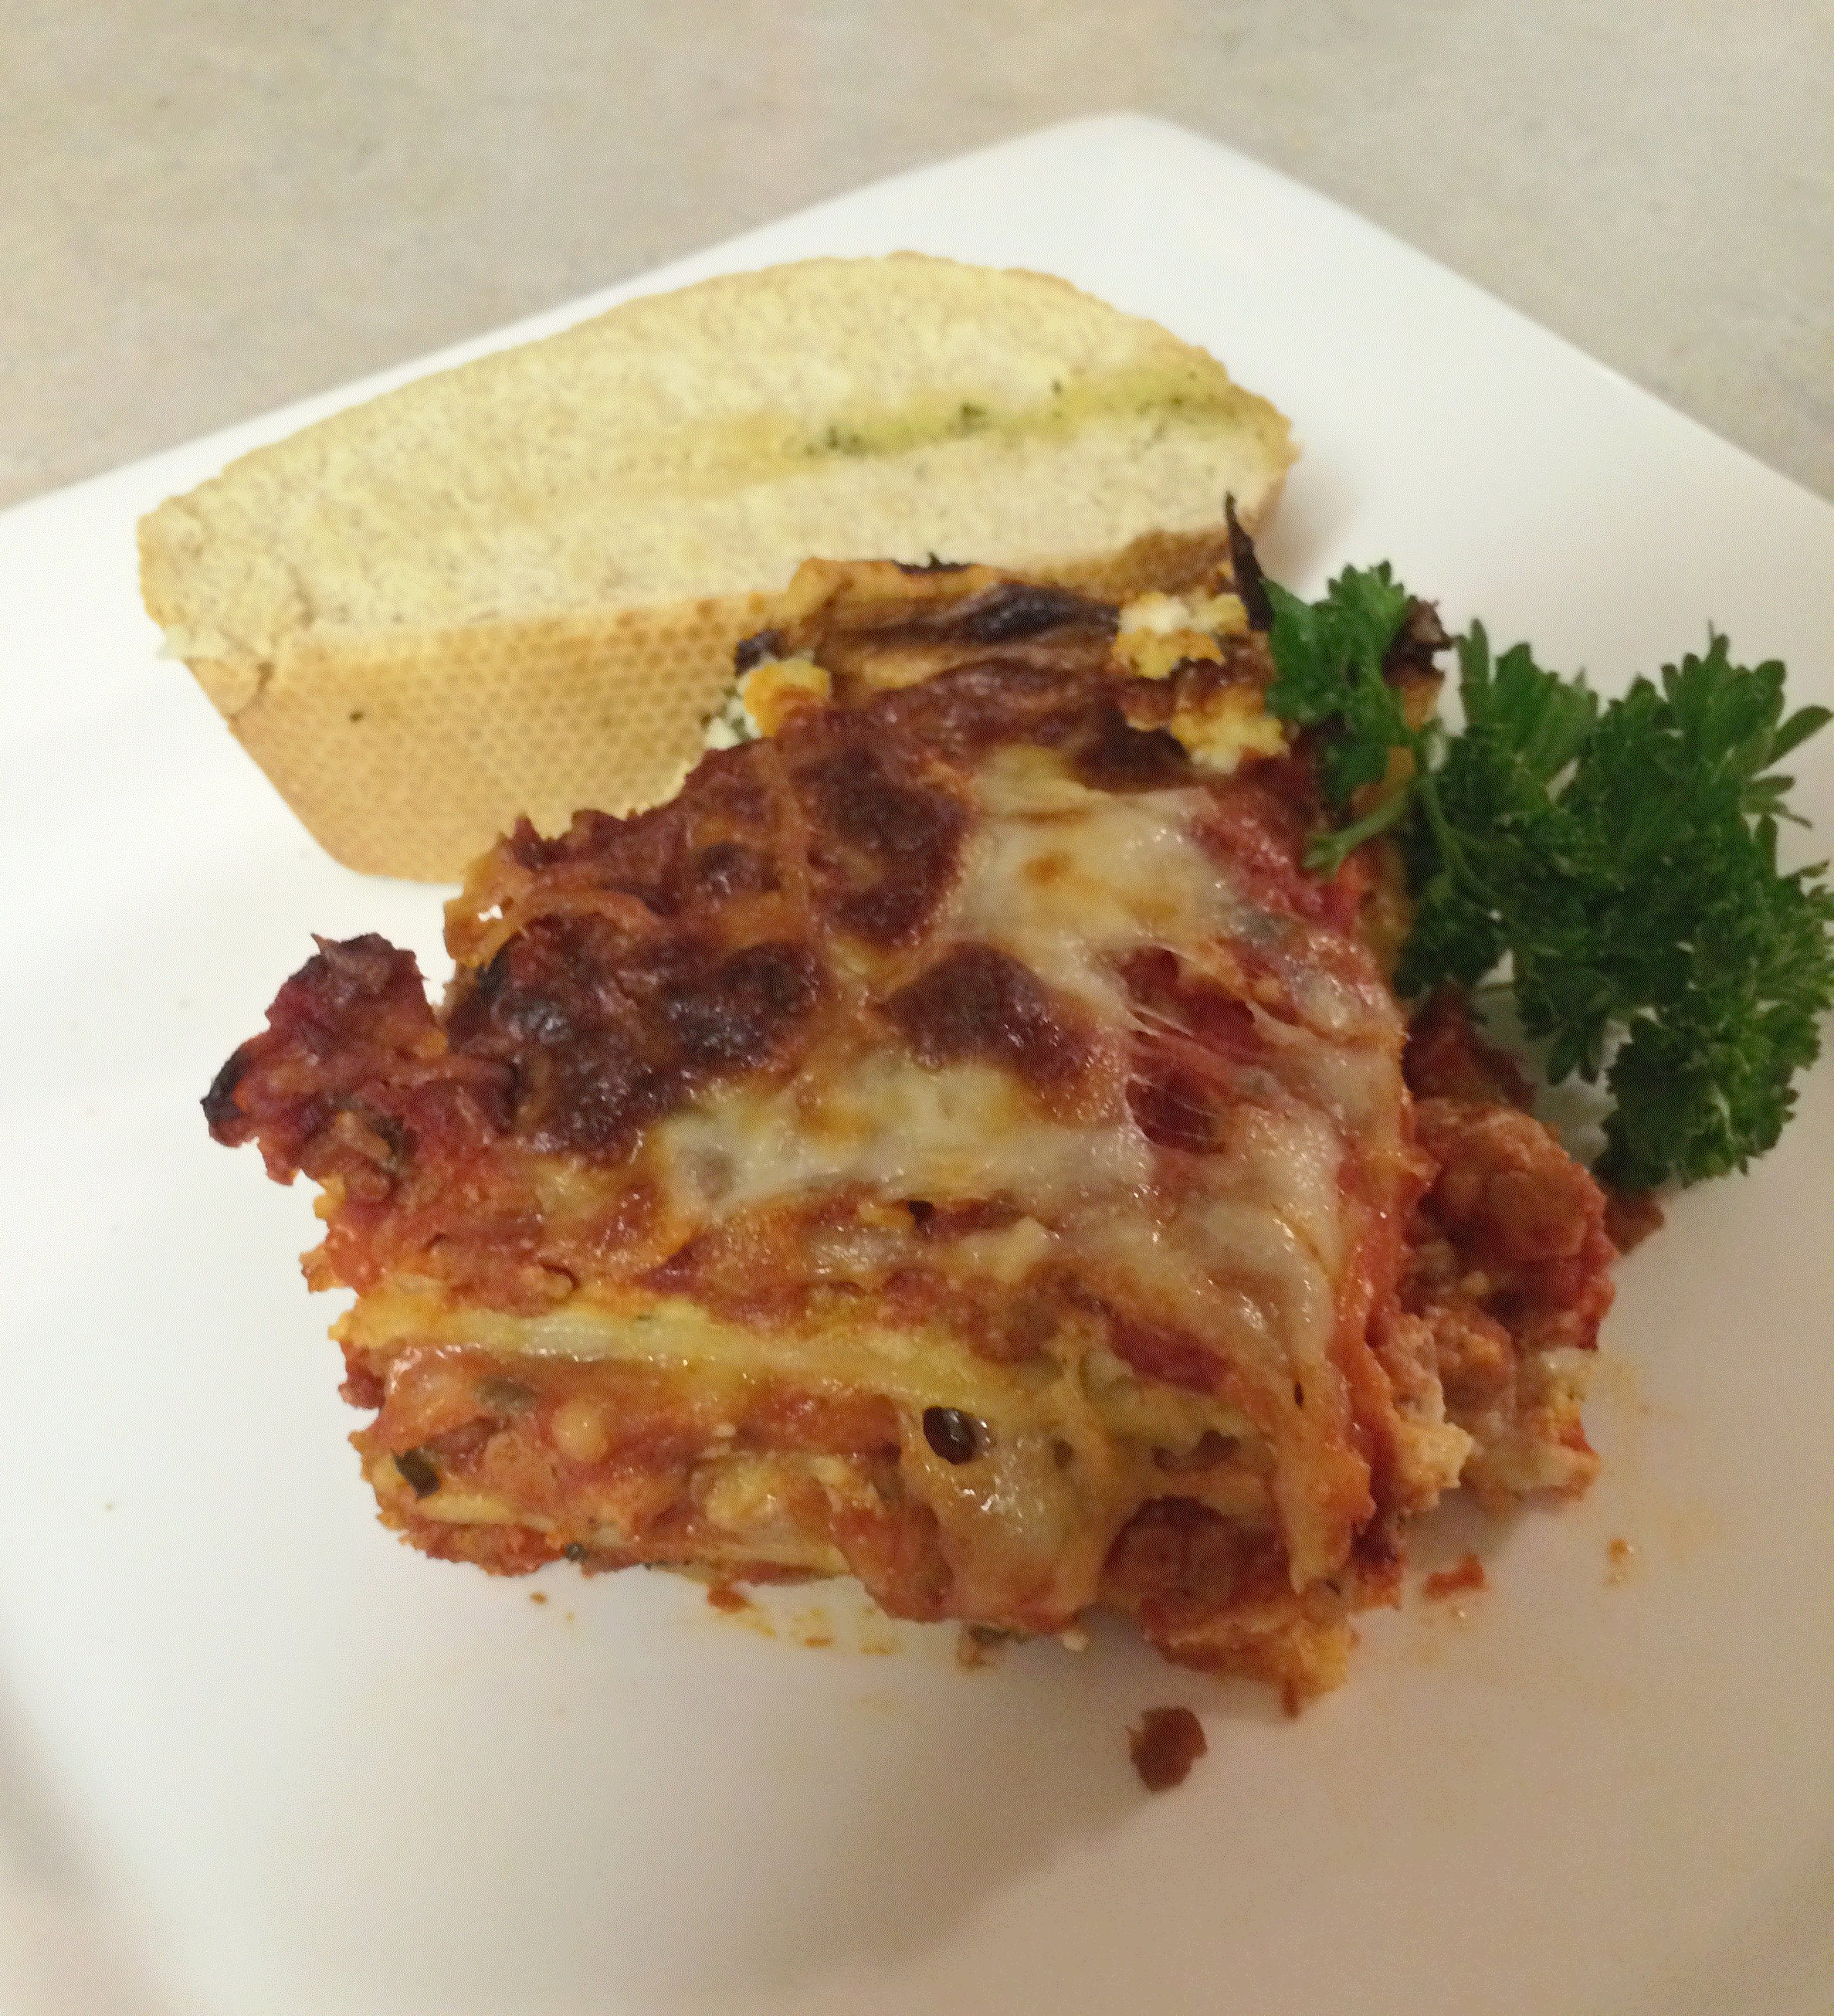 Four Cheese Lasagna with Spicy Italian Sausage (gf)